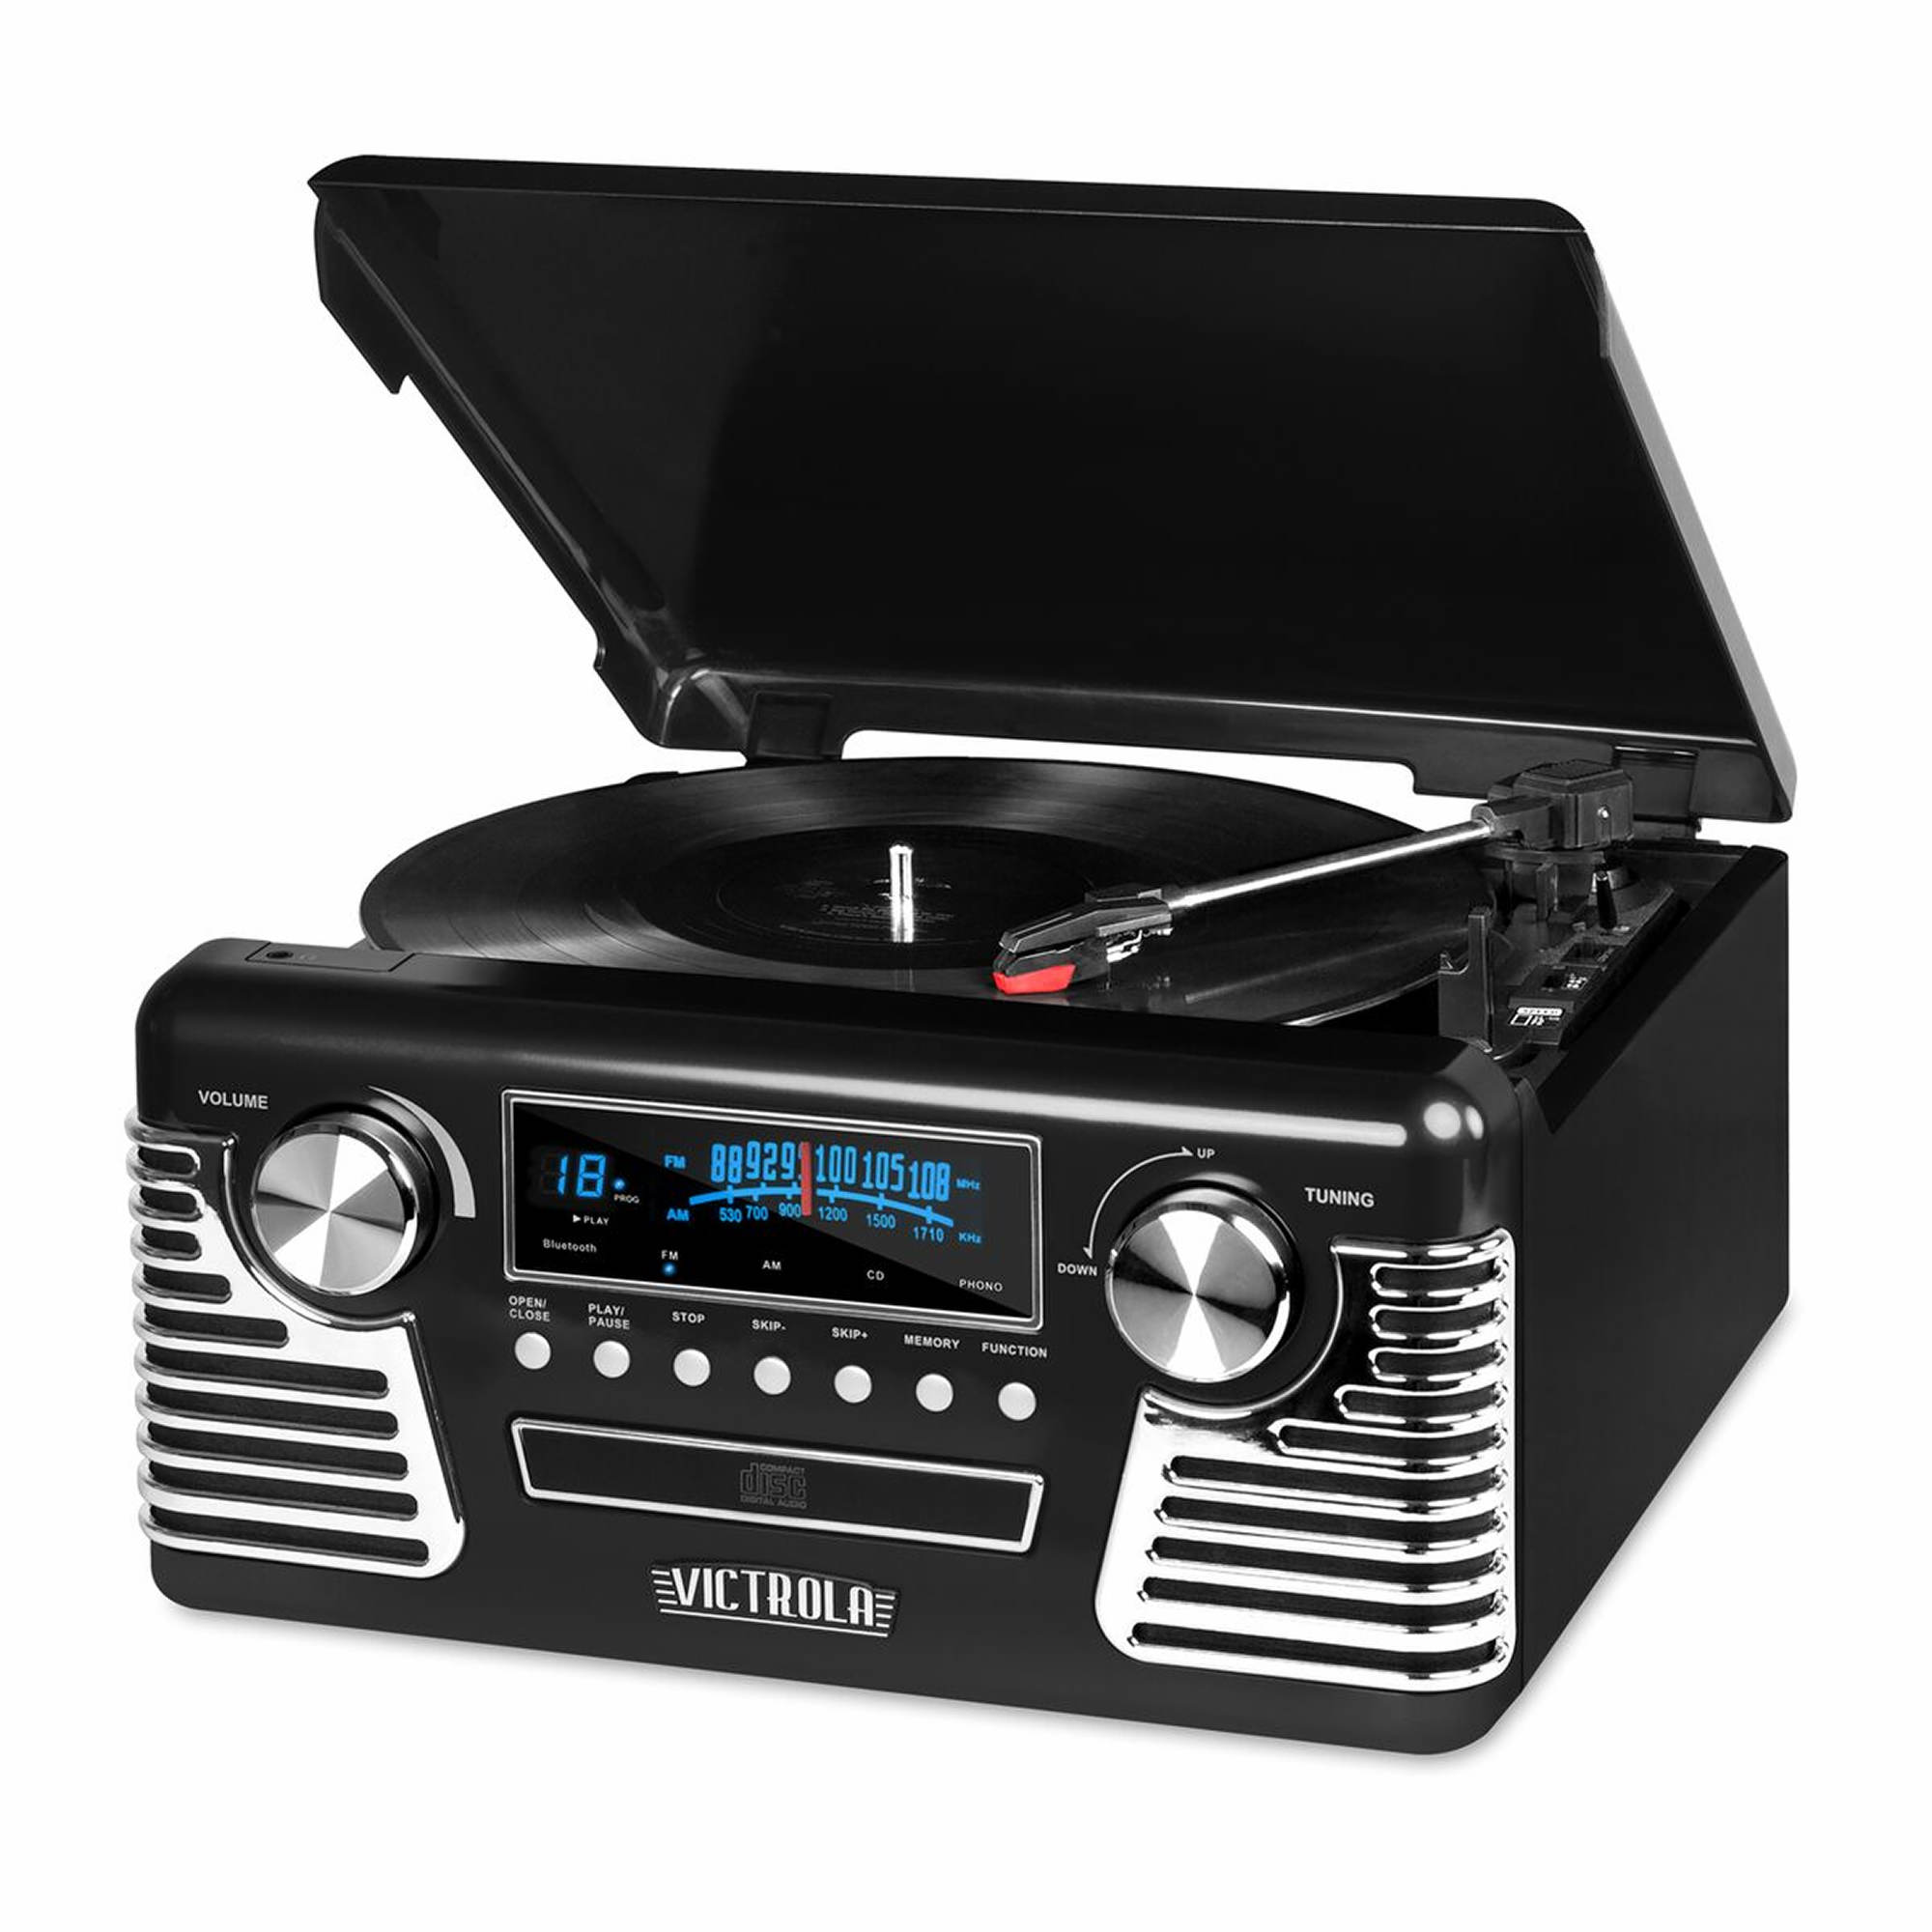 Victrola '50s Retro Record Player with Bluetooth and CD Player - Black